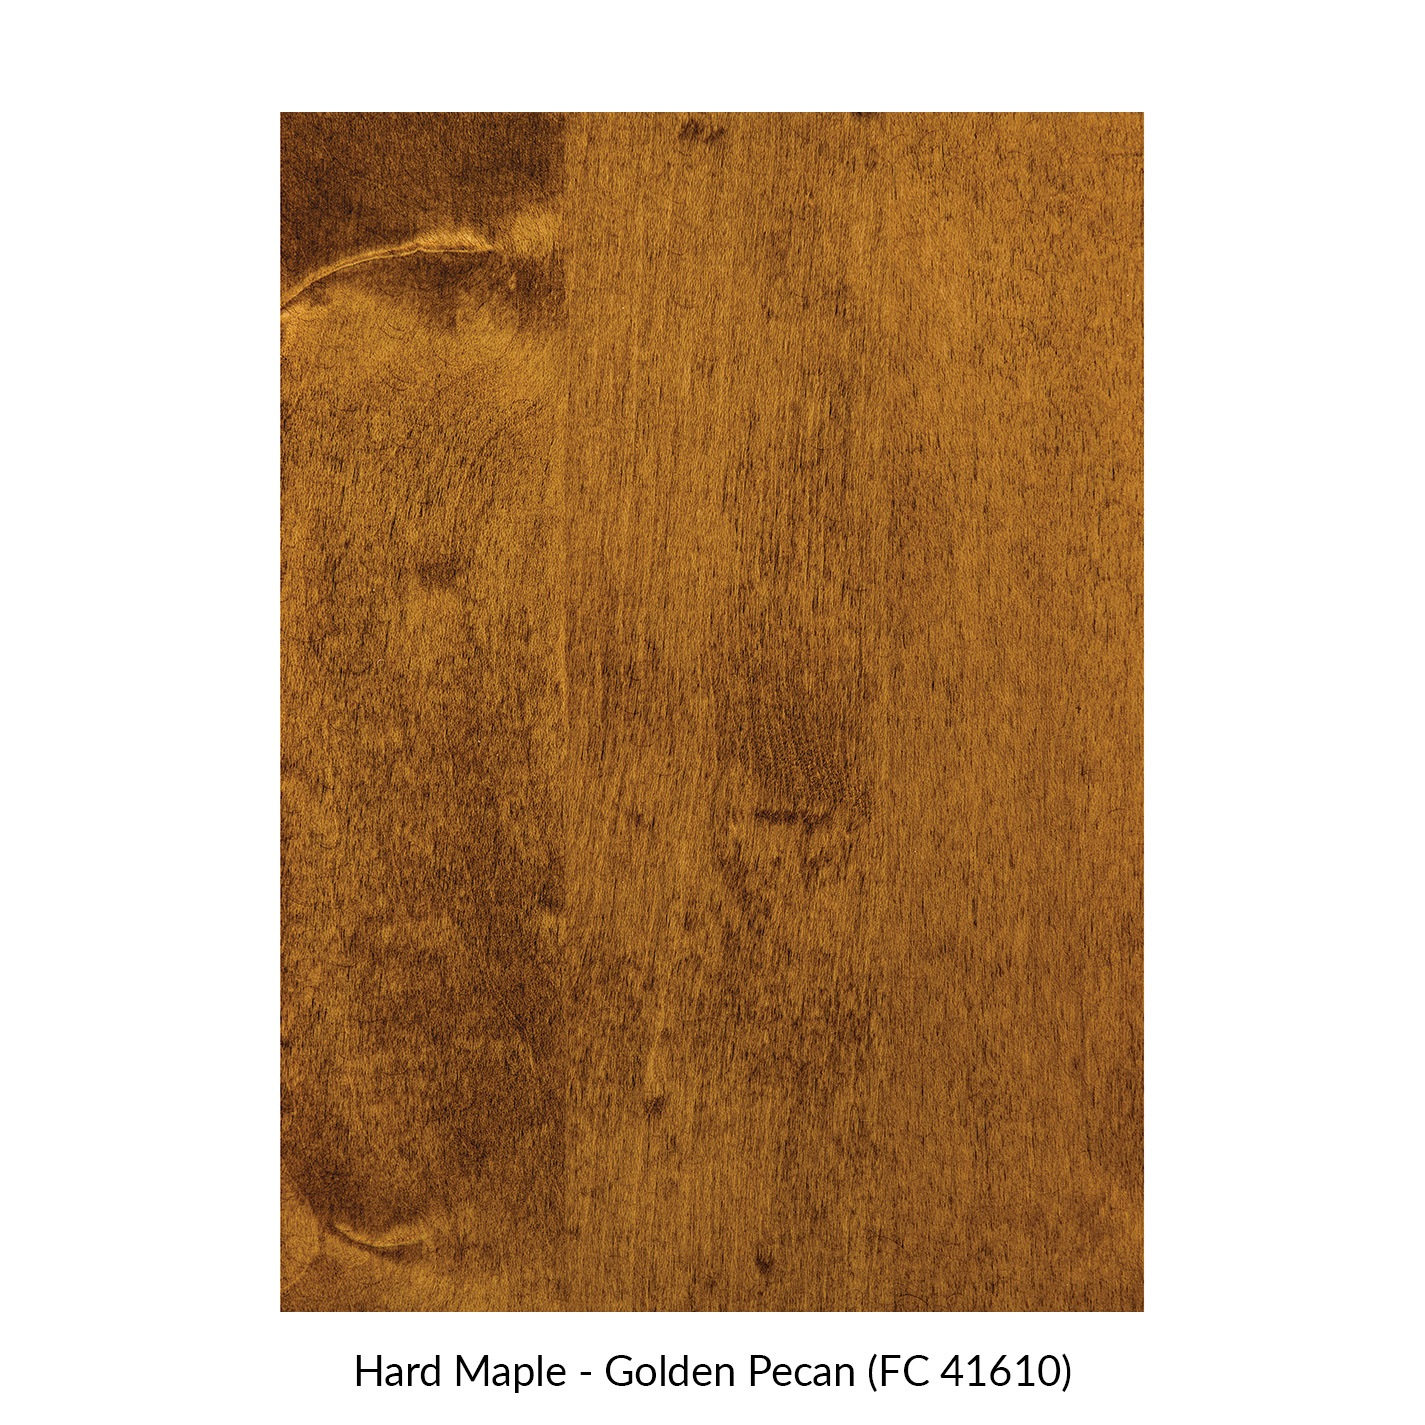 spectrum-hard-maple-golden-pecan-fc-41610.jpg